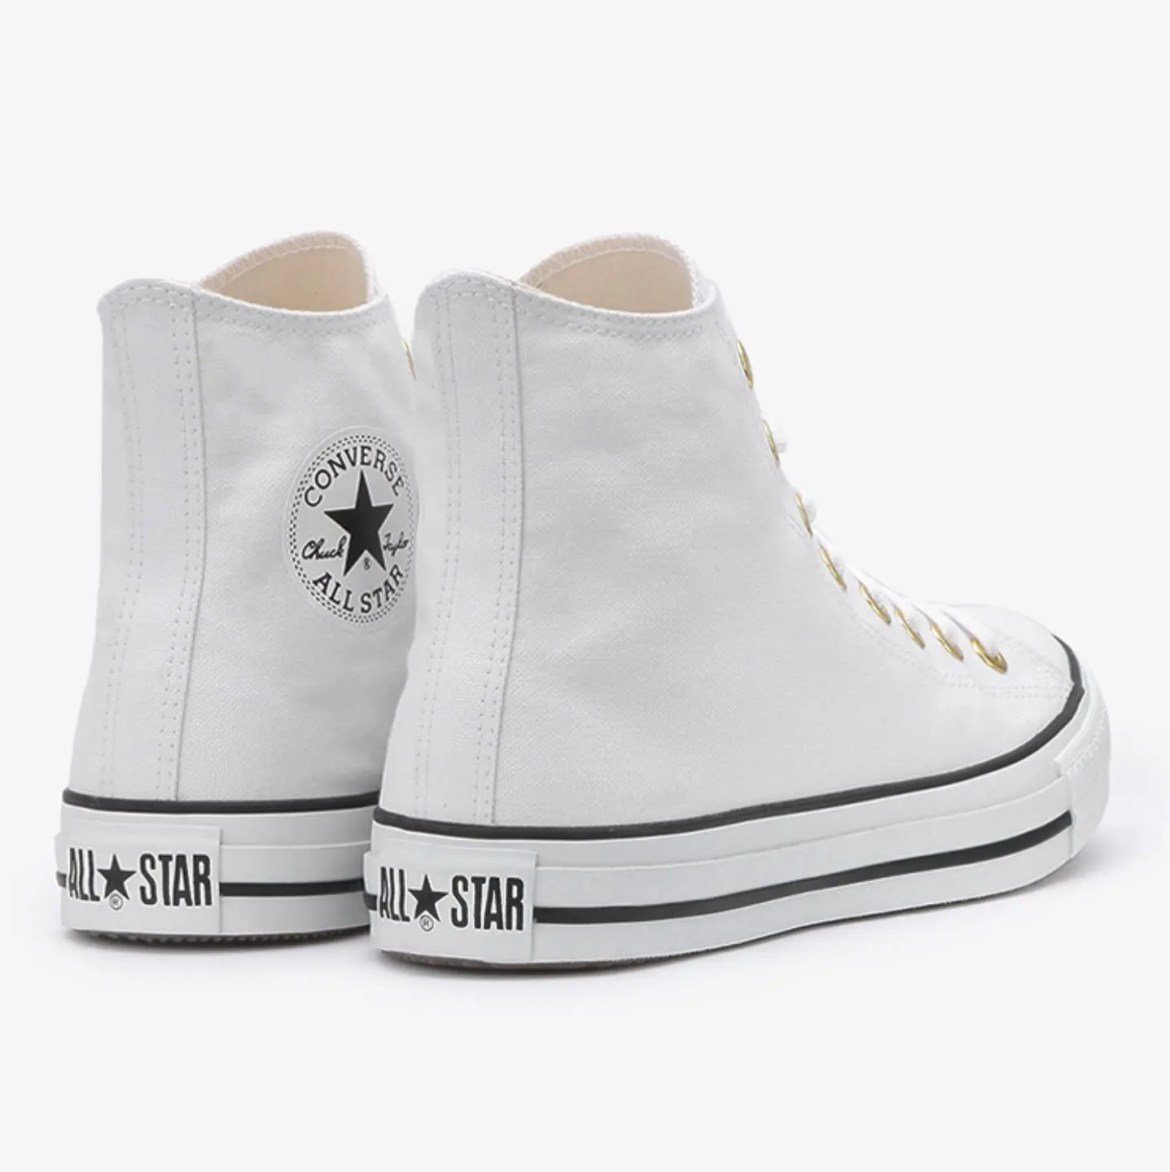 Converse ALL STAR WEARABLE STICKER HI WHITE-03